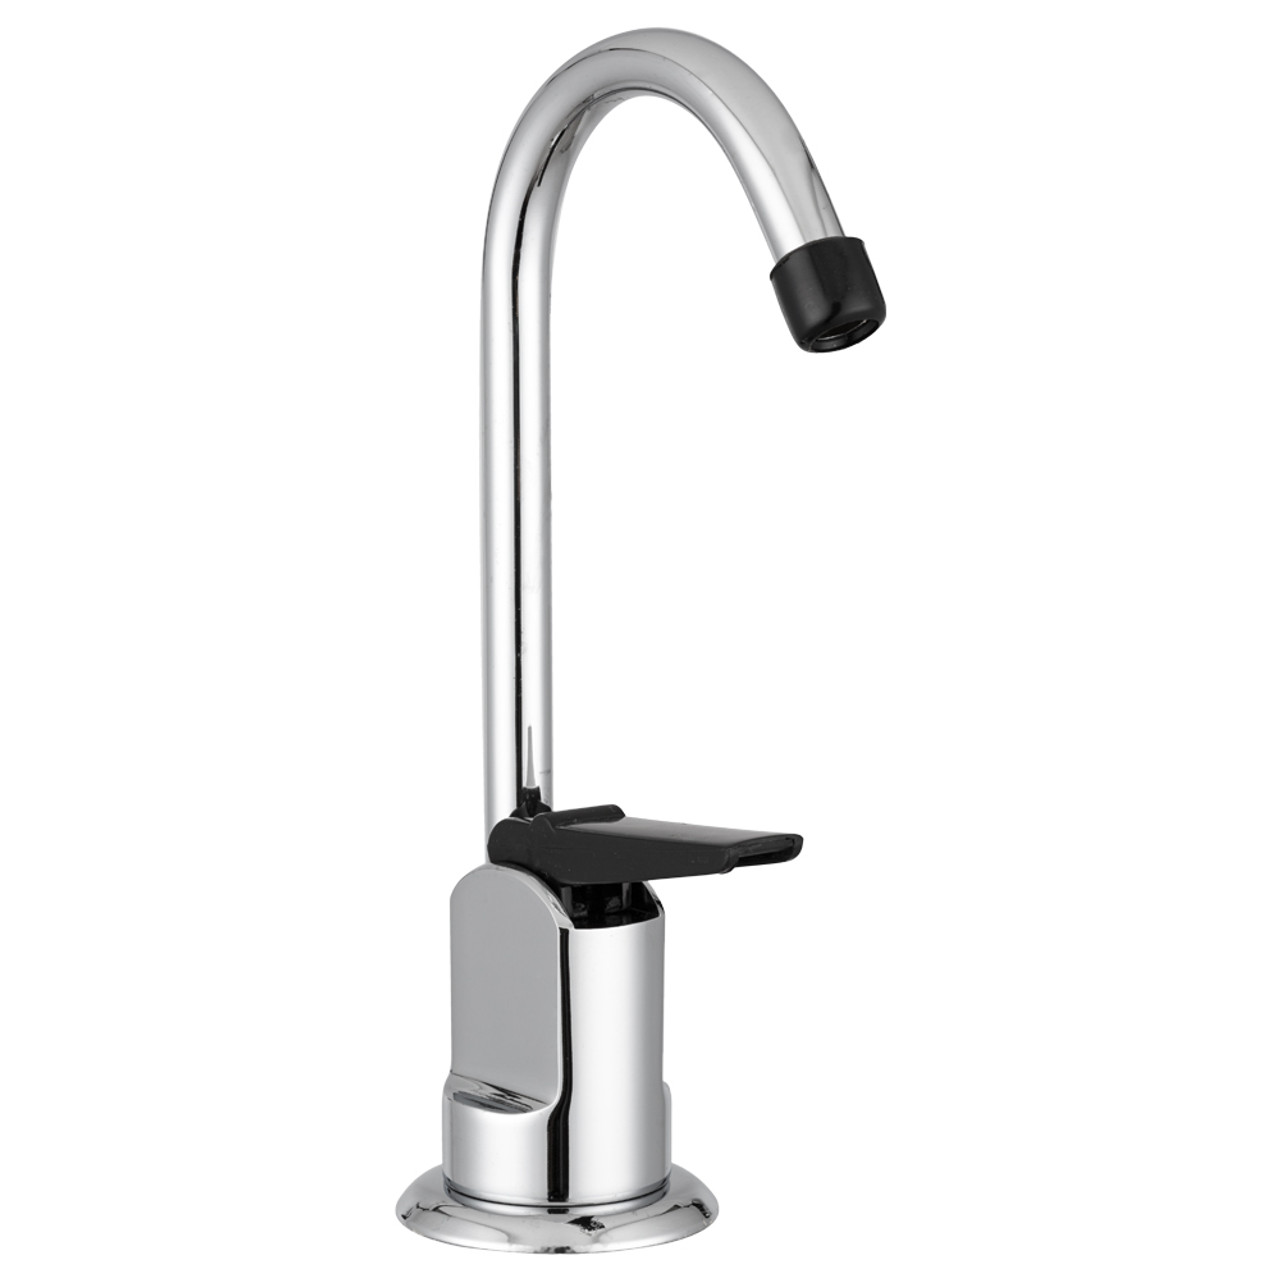 Dura Faucet Hi-Rise Pull-out RV Faucet  Fits Most Recreational Vehicles